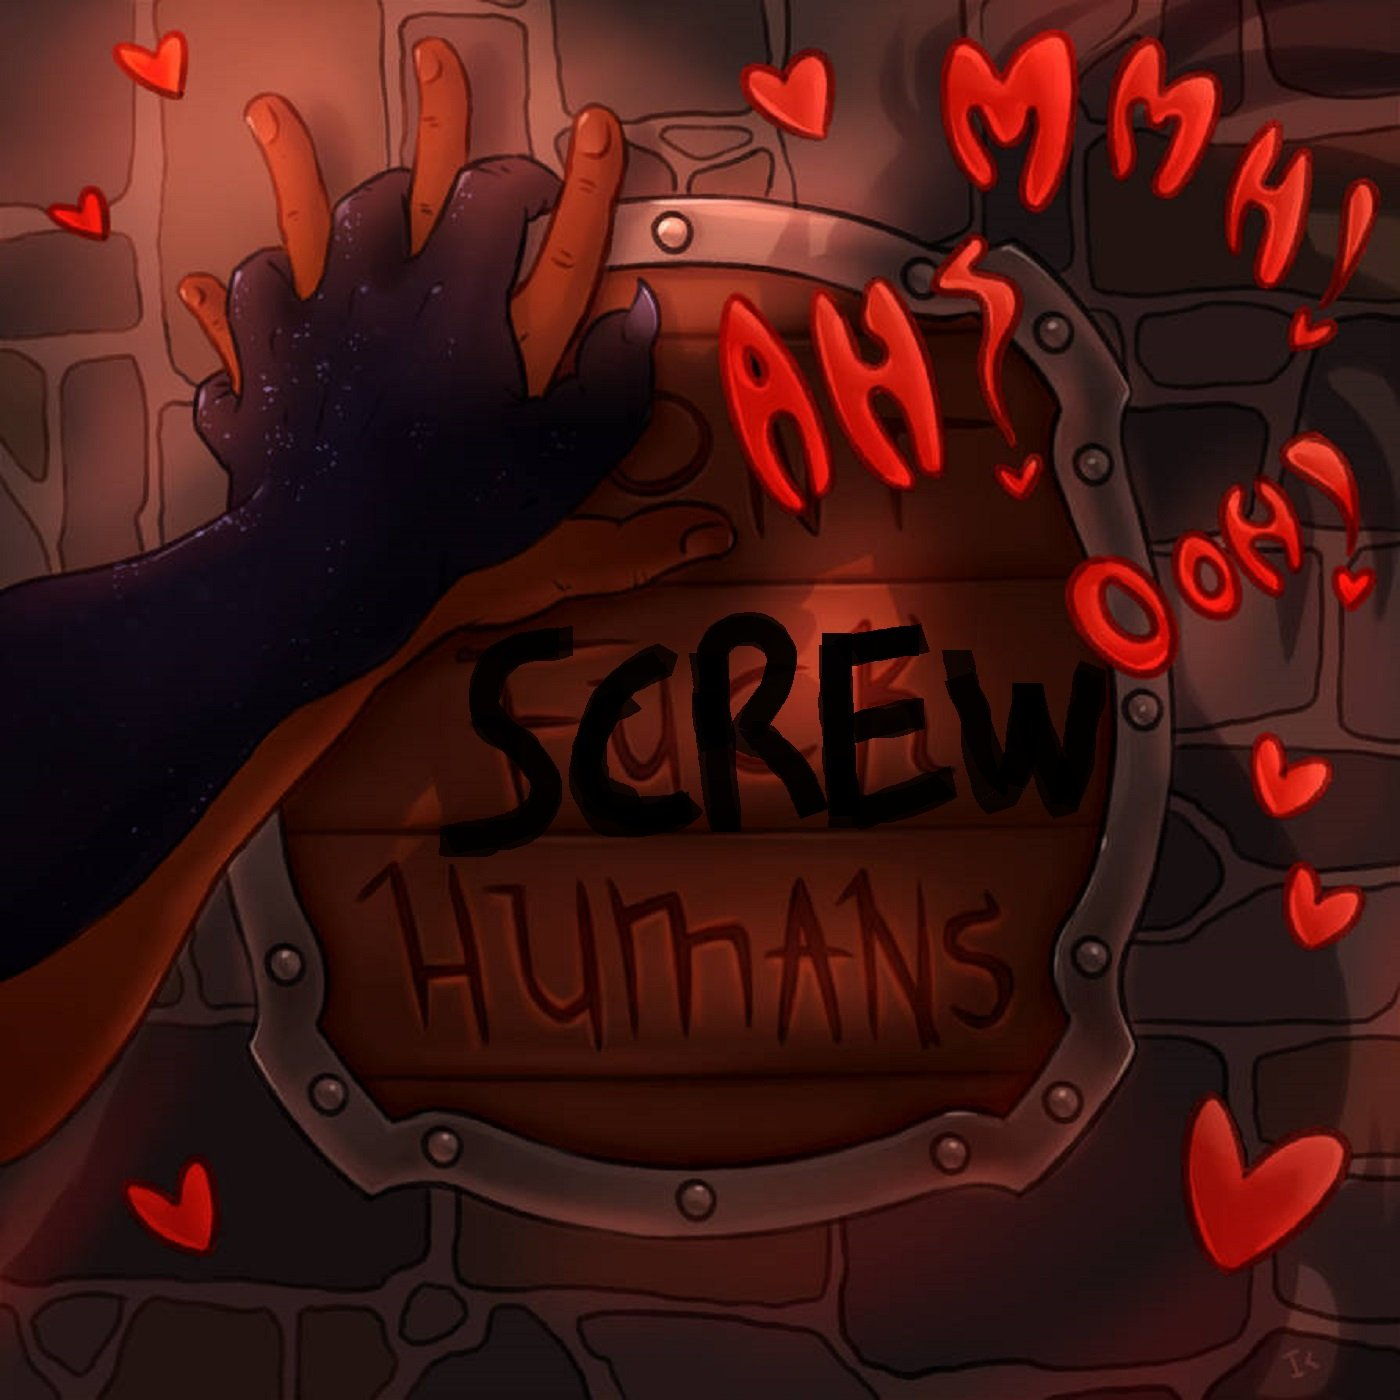 Screw Humans Podcast